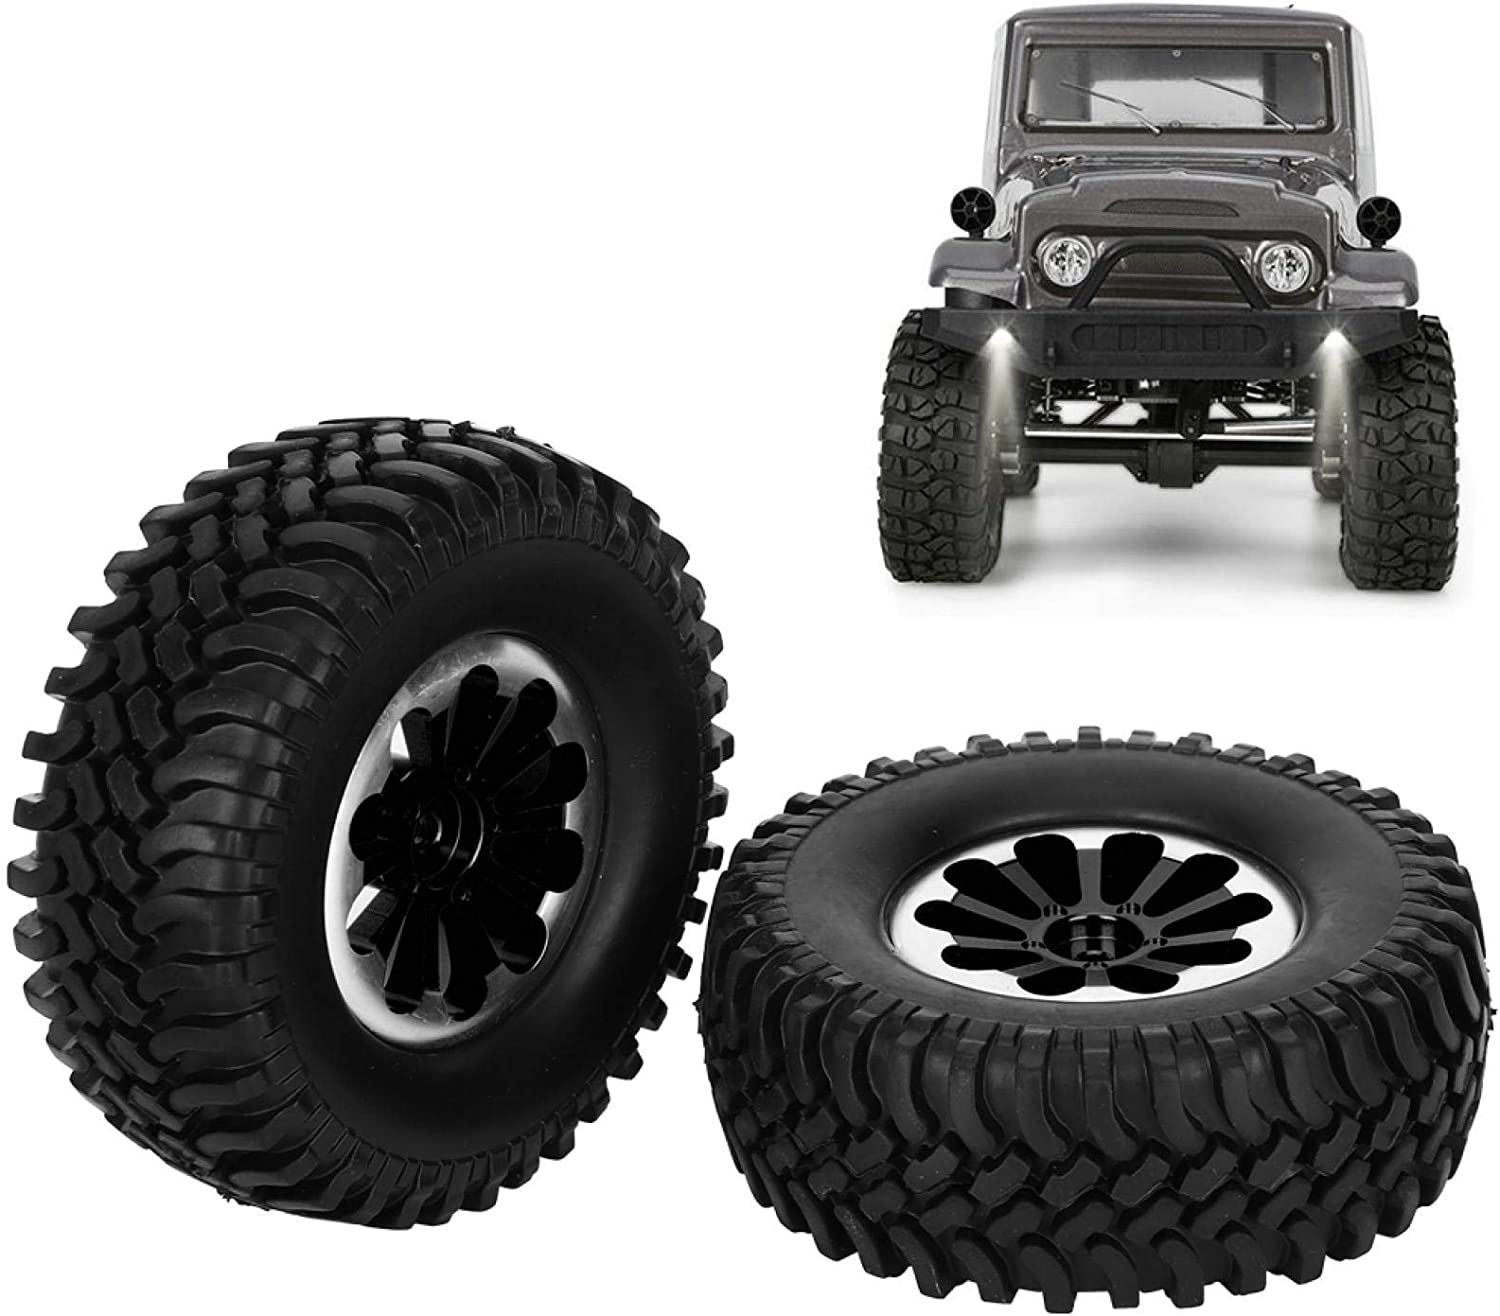 Demeras RC Alloy Tires Set Replacement for RGT 136100 1//10 RC Crawler RC Accessories